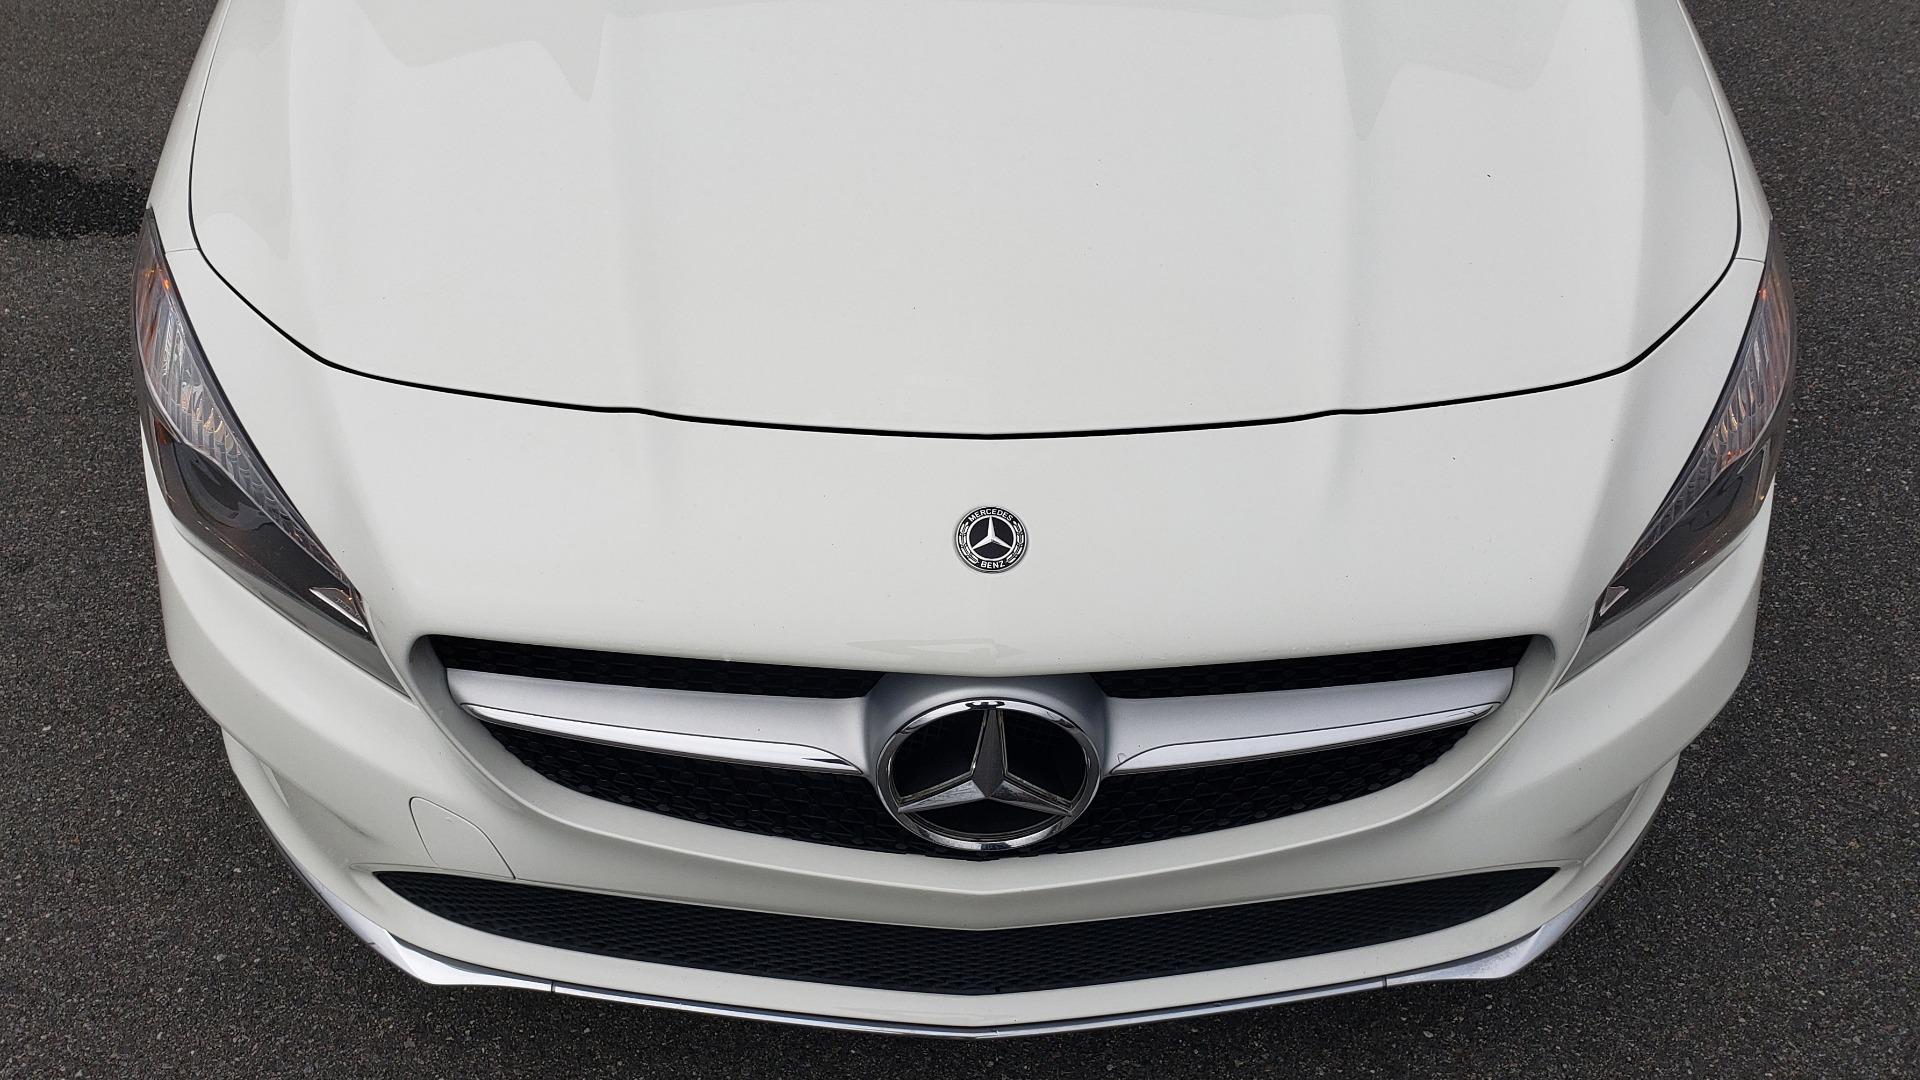 Used 2018 Mercedes-Benz CLA 250 PREMIUM / NAV / PANO-ROOF / APPLE CARPLAY / REARVIEW for sale $23,995 at Formula Imports in Charlotte NC 28227 22